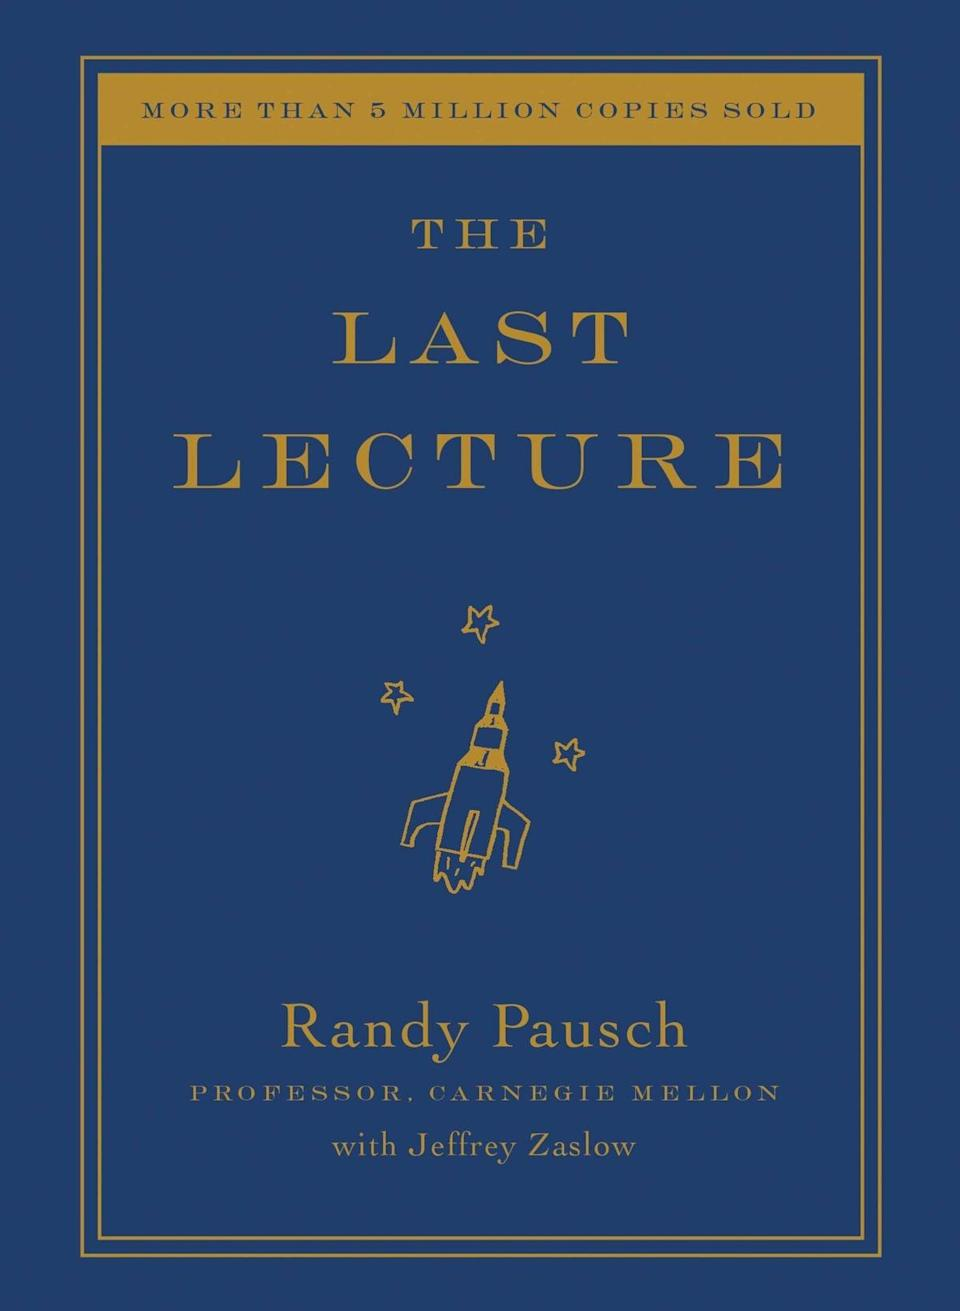 "<p><a href=""https://www.amazon.com/Last-Lecture-Randy-Pausch/dp/1401323251"" class=""link rapid-noclick-resp"" rel=""nofollow noopener"" target=""_blank"" data-ylk=""slk:The Last Lecture""><strong>The Last Lecture</strong></a> is a book written by a professor who managed to squeeze the most out of his final days after a terminal cancer diagnosis.</p>"